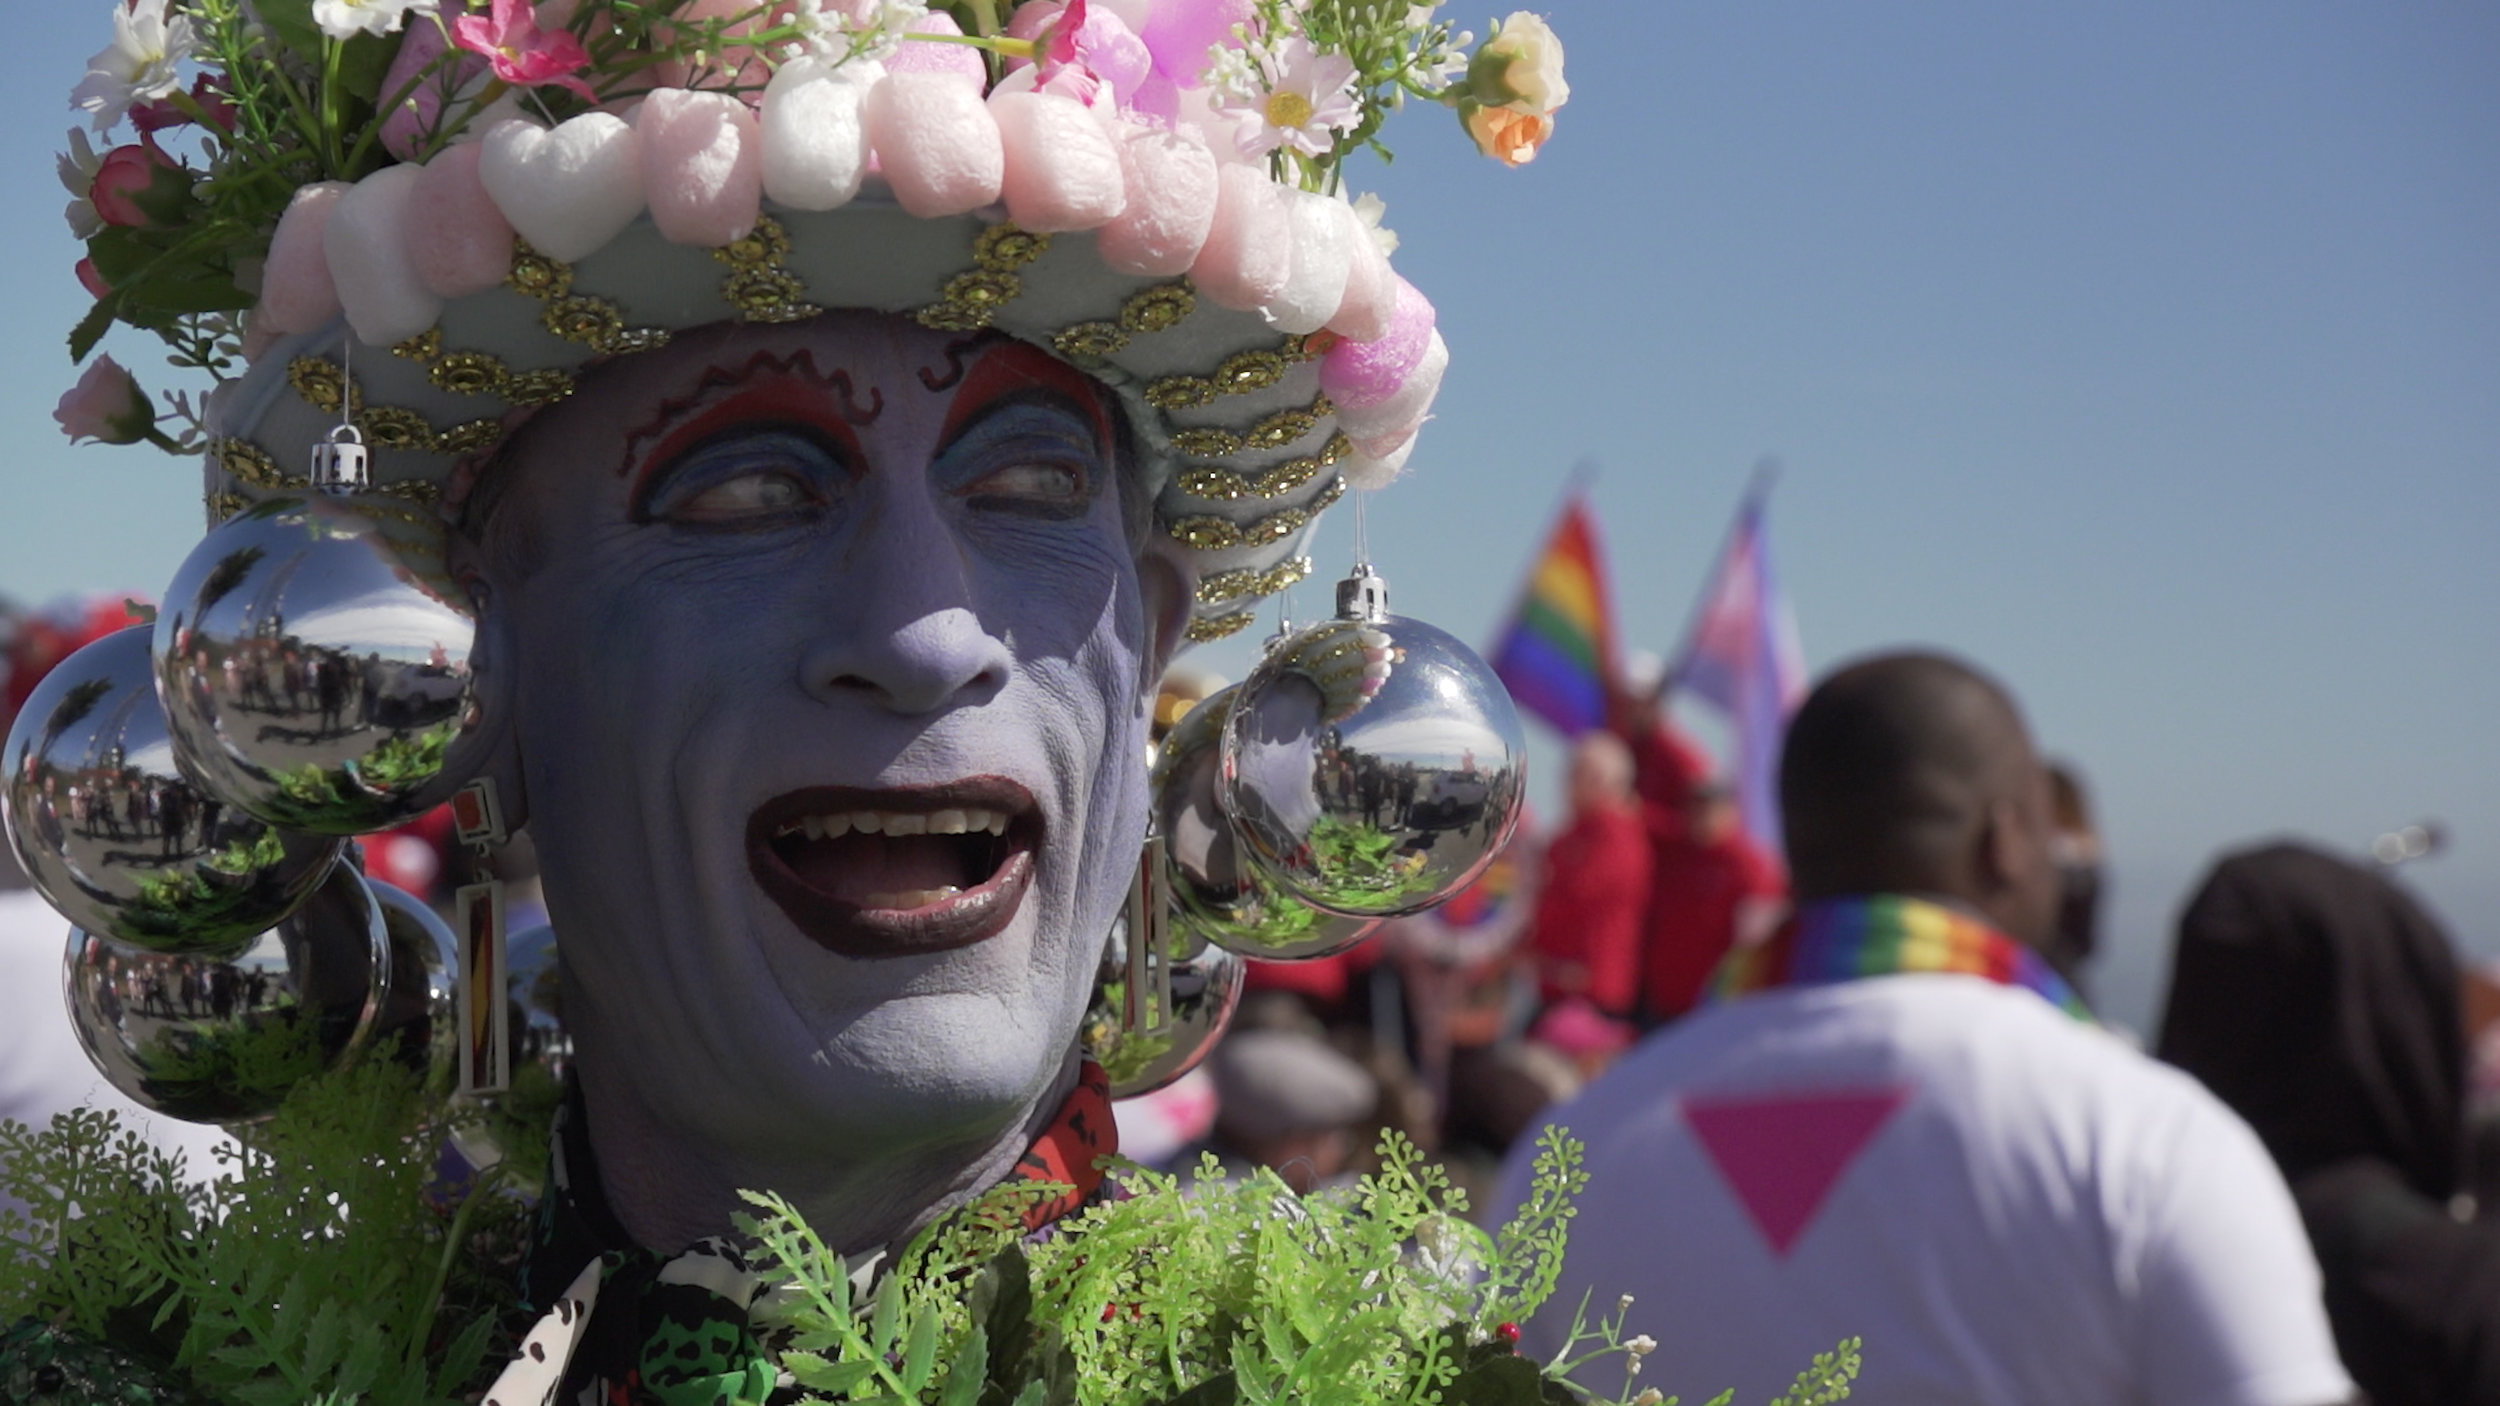 Mrs. Vera's Daybook - Having received the coveted Community Grand Marshall appointment for the SF PRIDE Parade in 2019, the once silent character of Mrs. Vera must find a voice to address the concerns of the entire LGBTQ community.